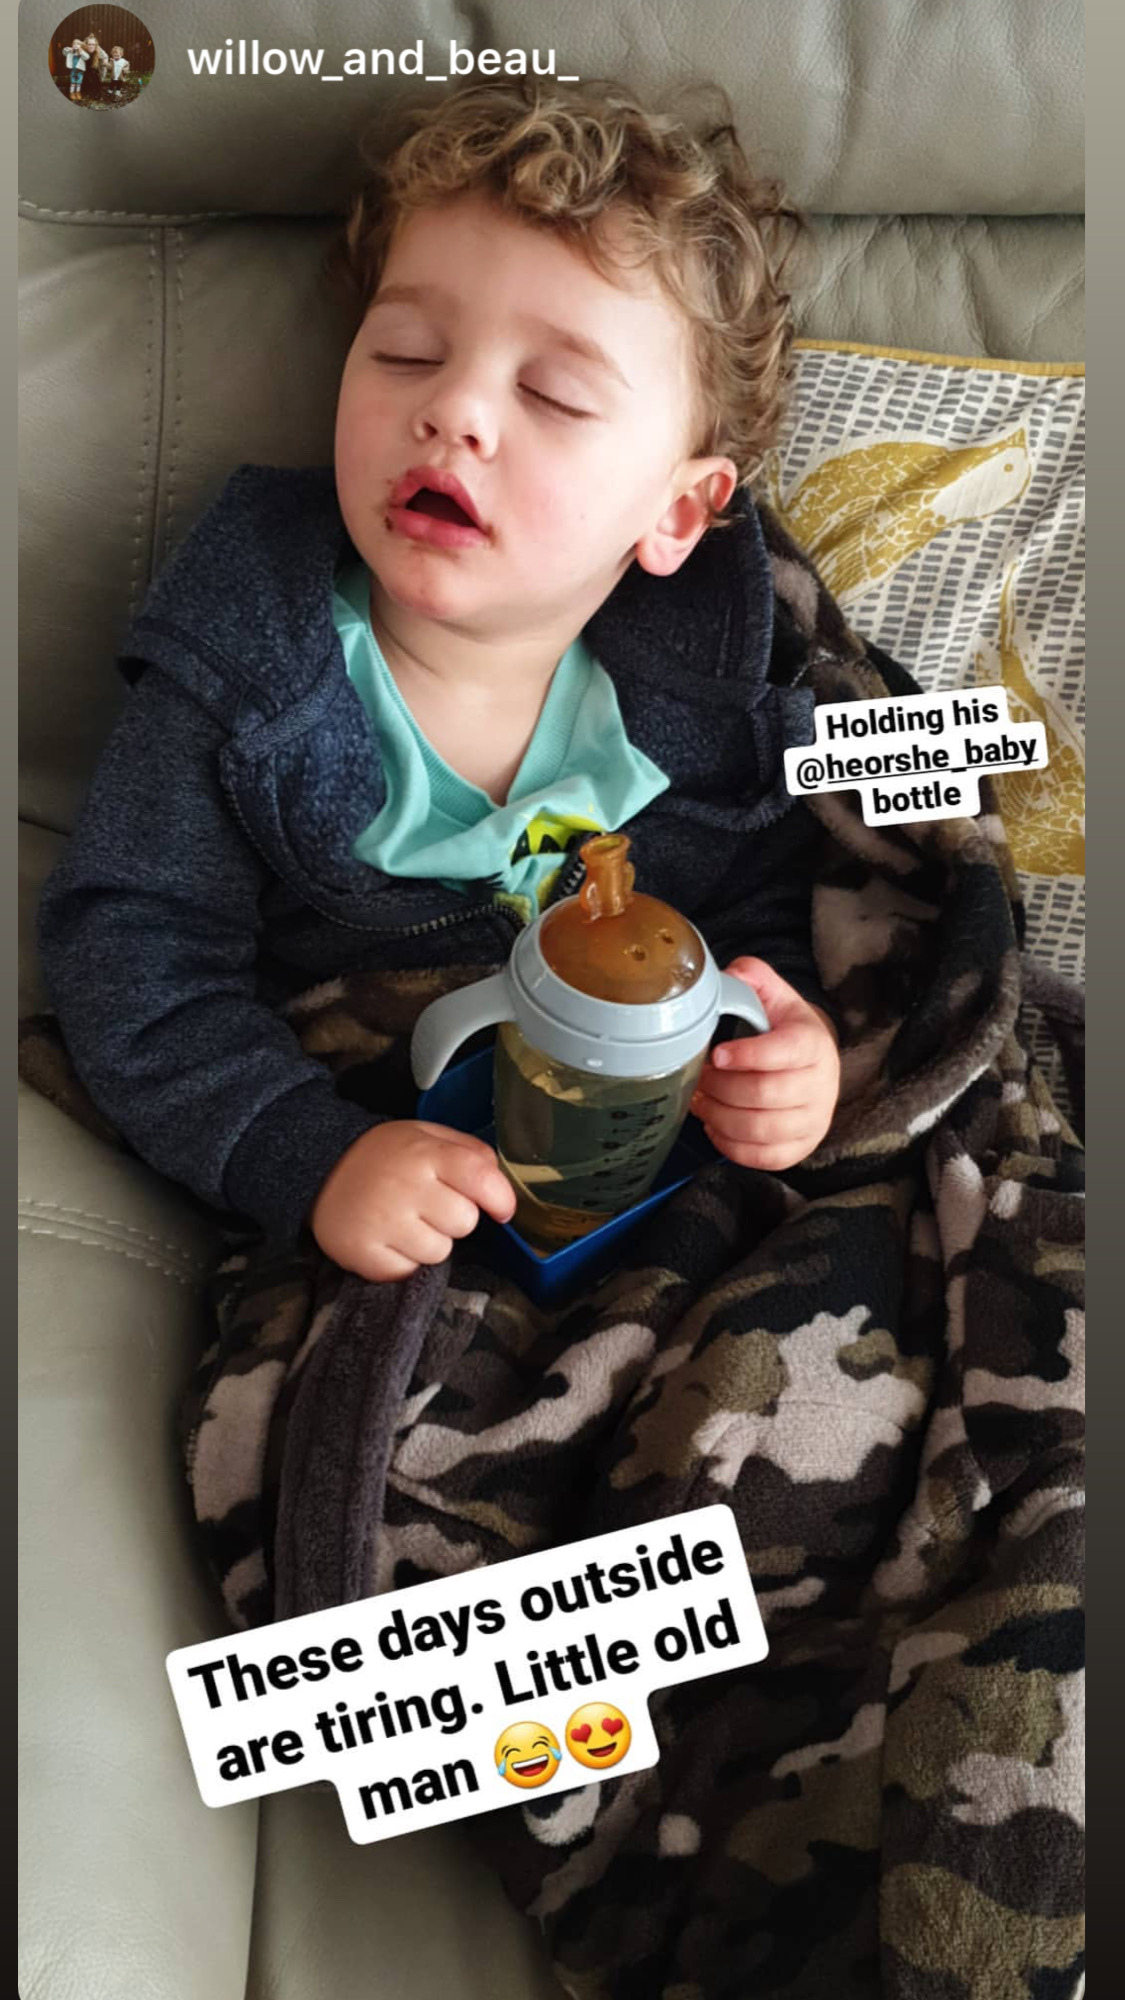 Even if I fall asleep, I want to hold my #heorshe sippy cup. .